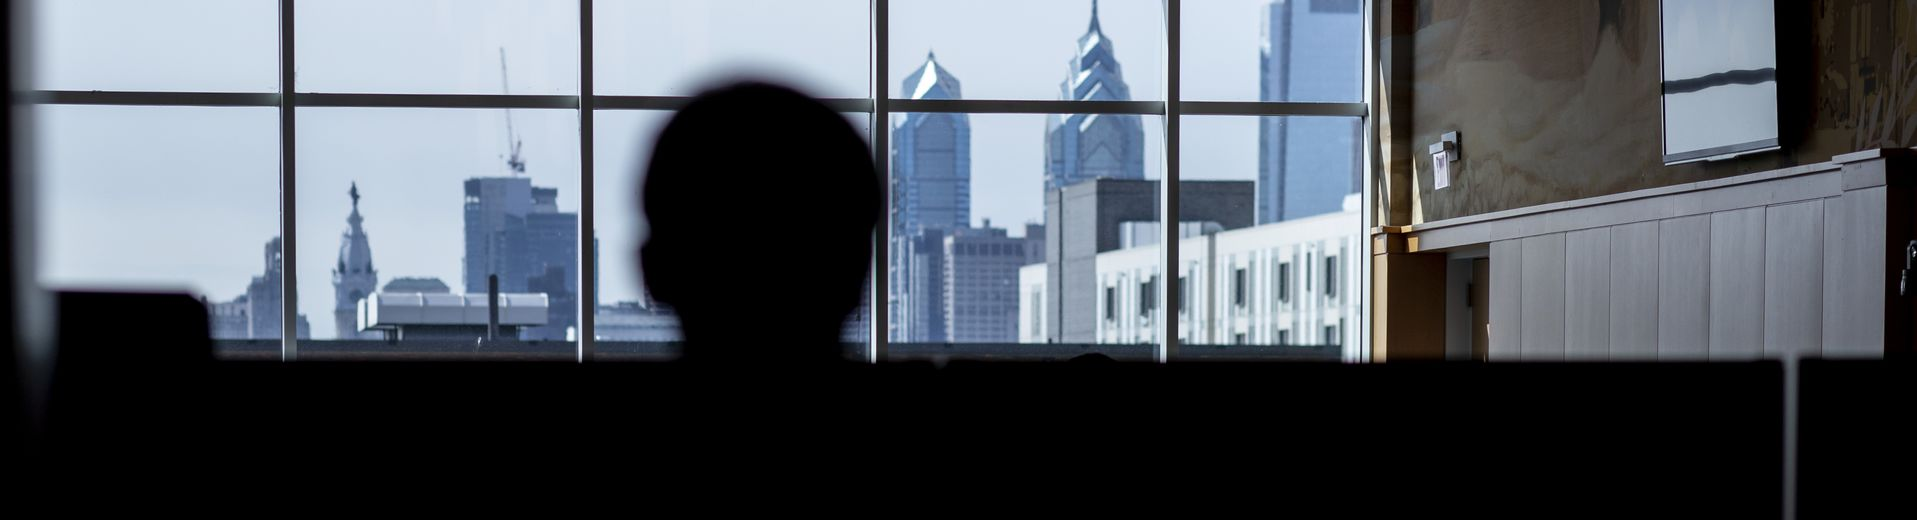 A student looks at the Philadelphia skyline through the windows of a building at Temple University.